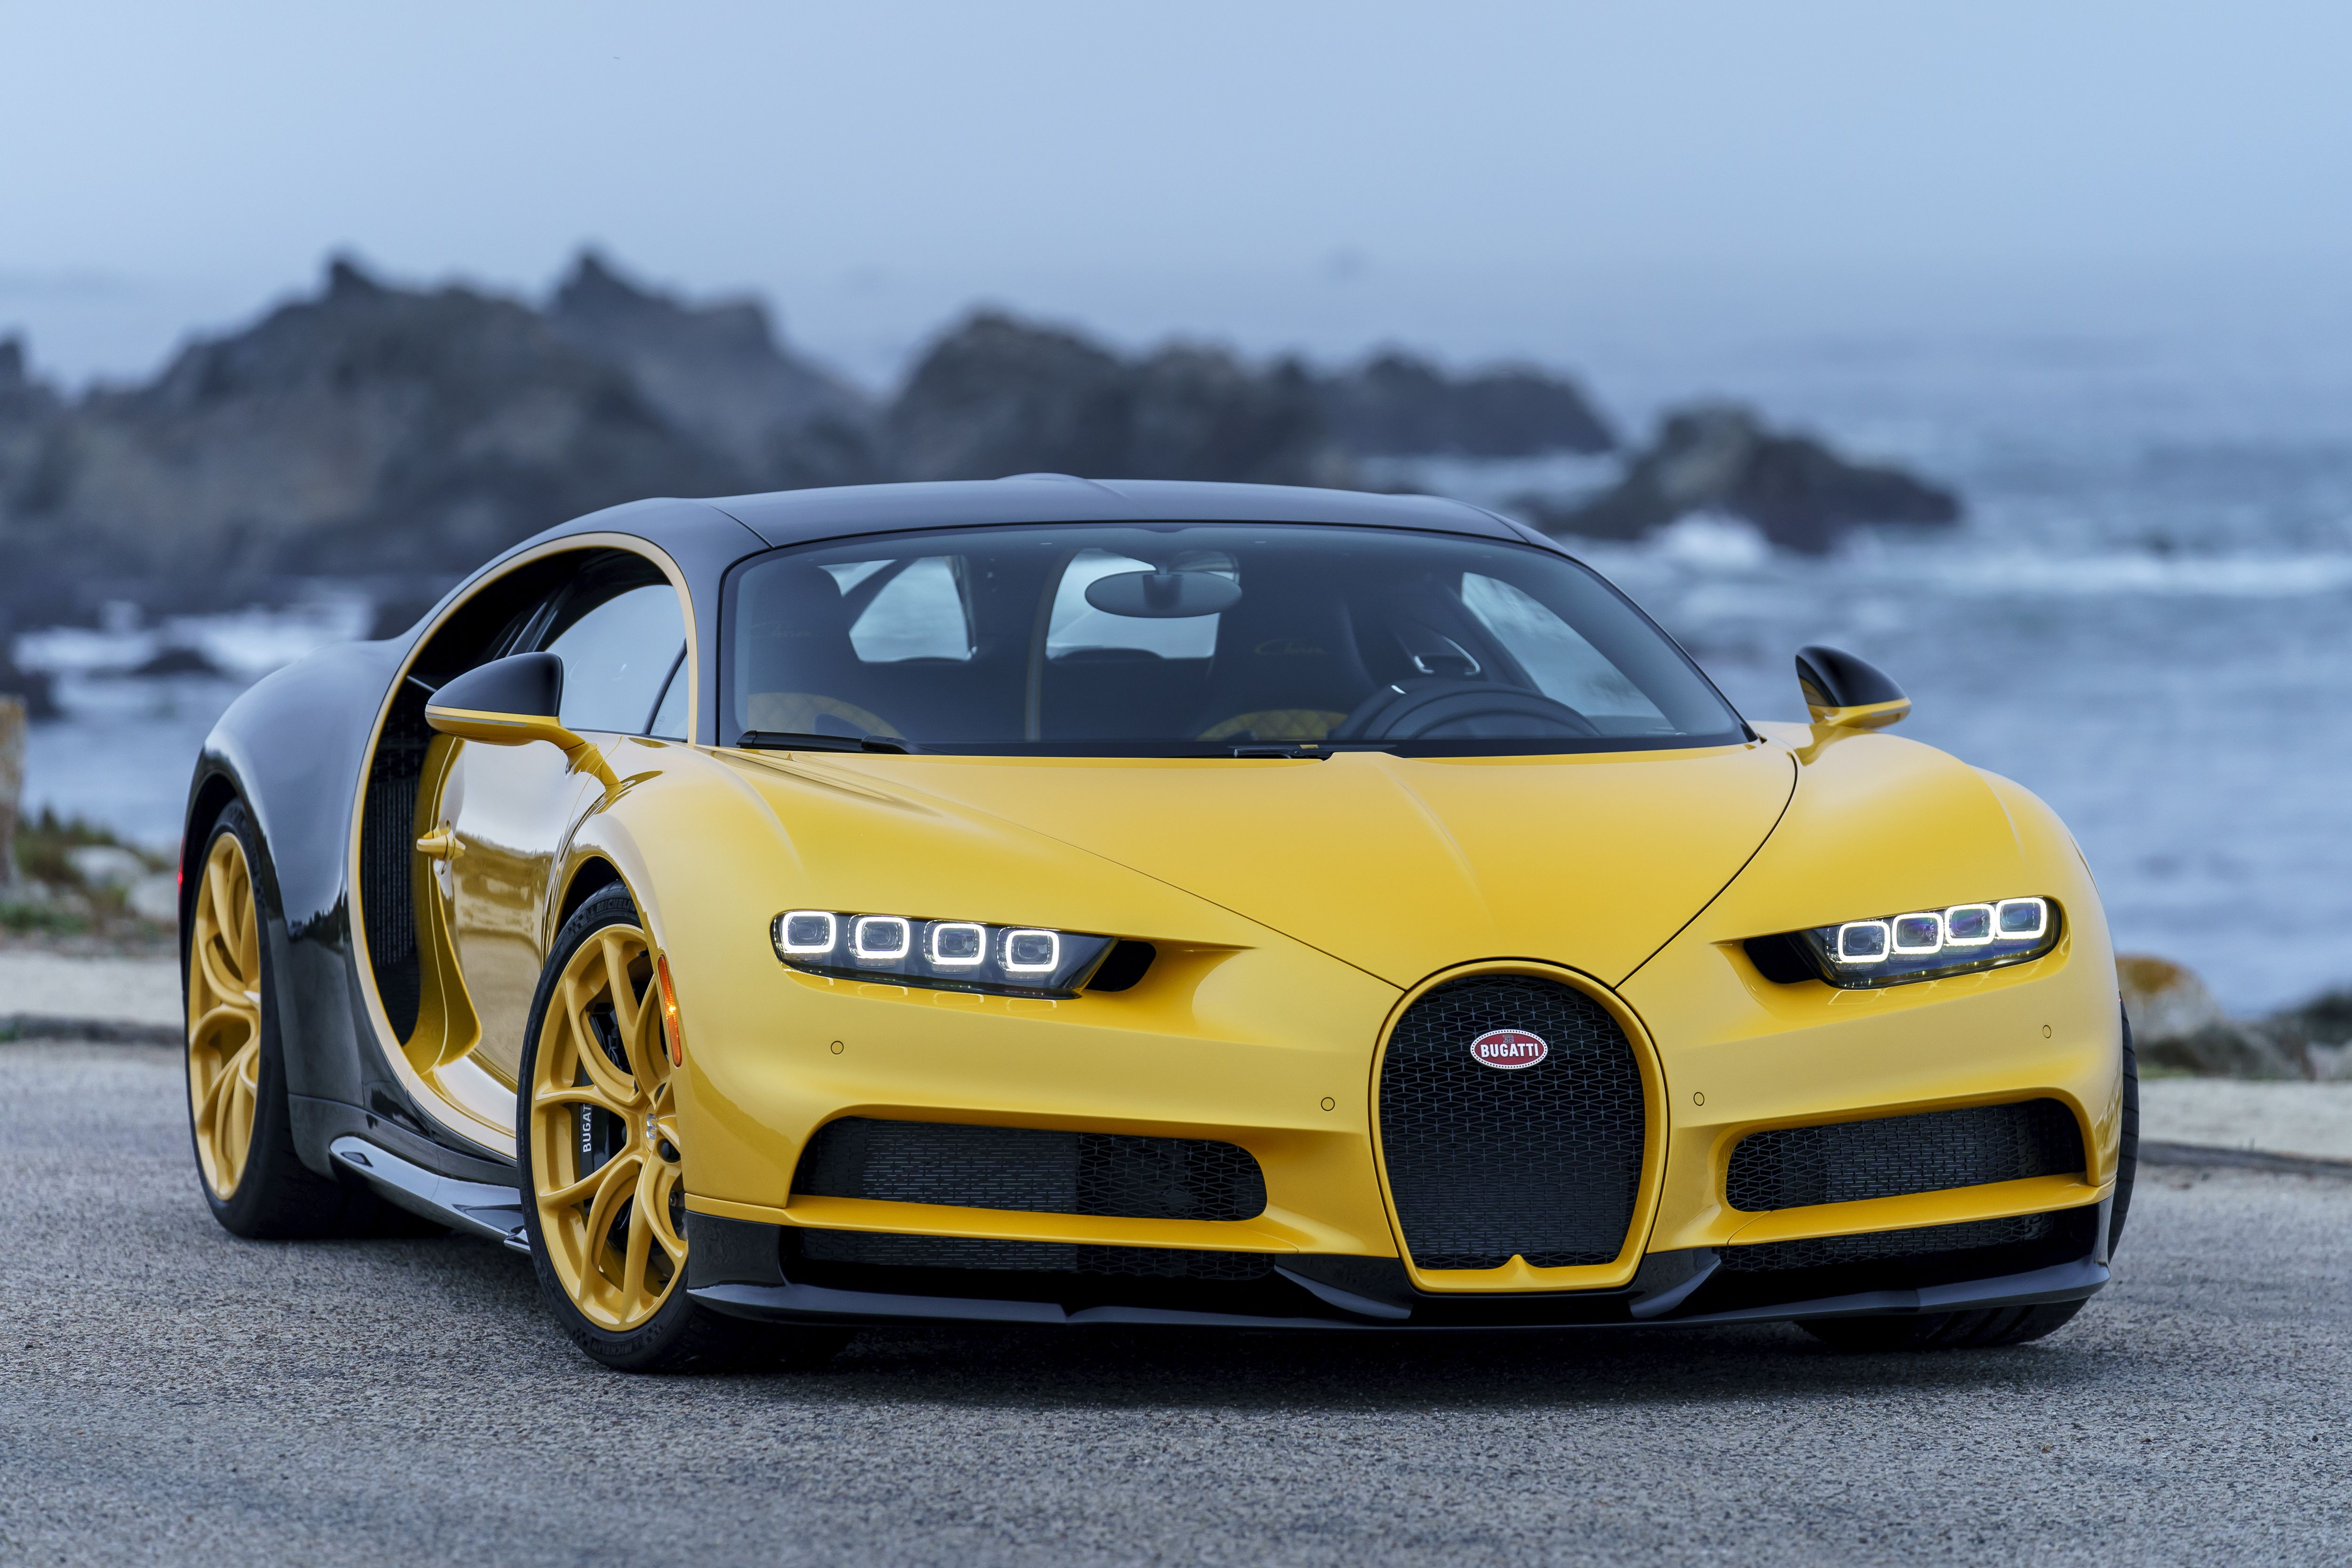 22 cars with incredibly